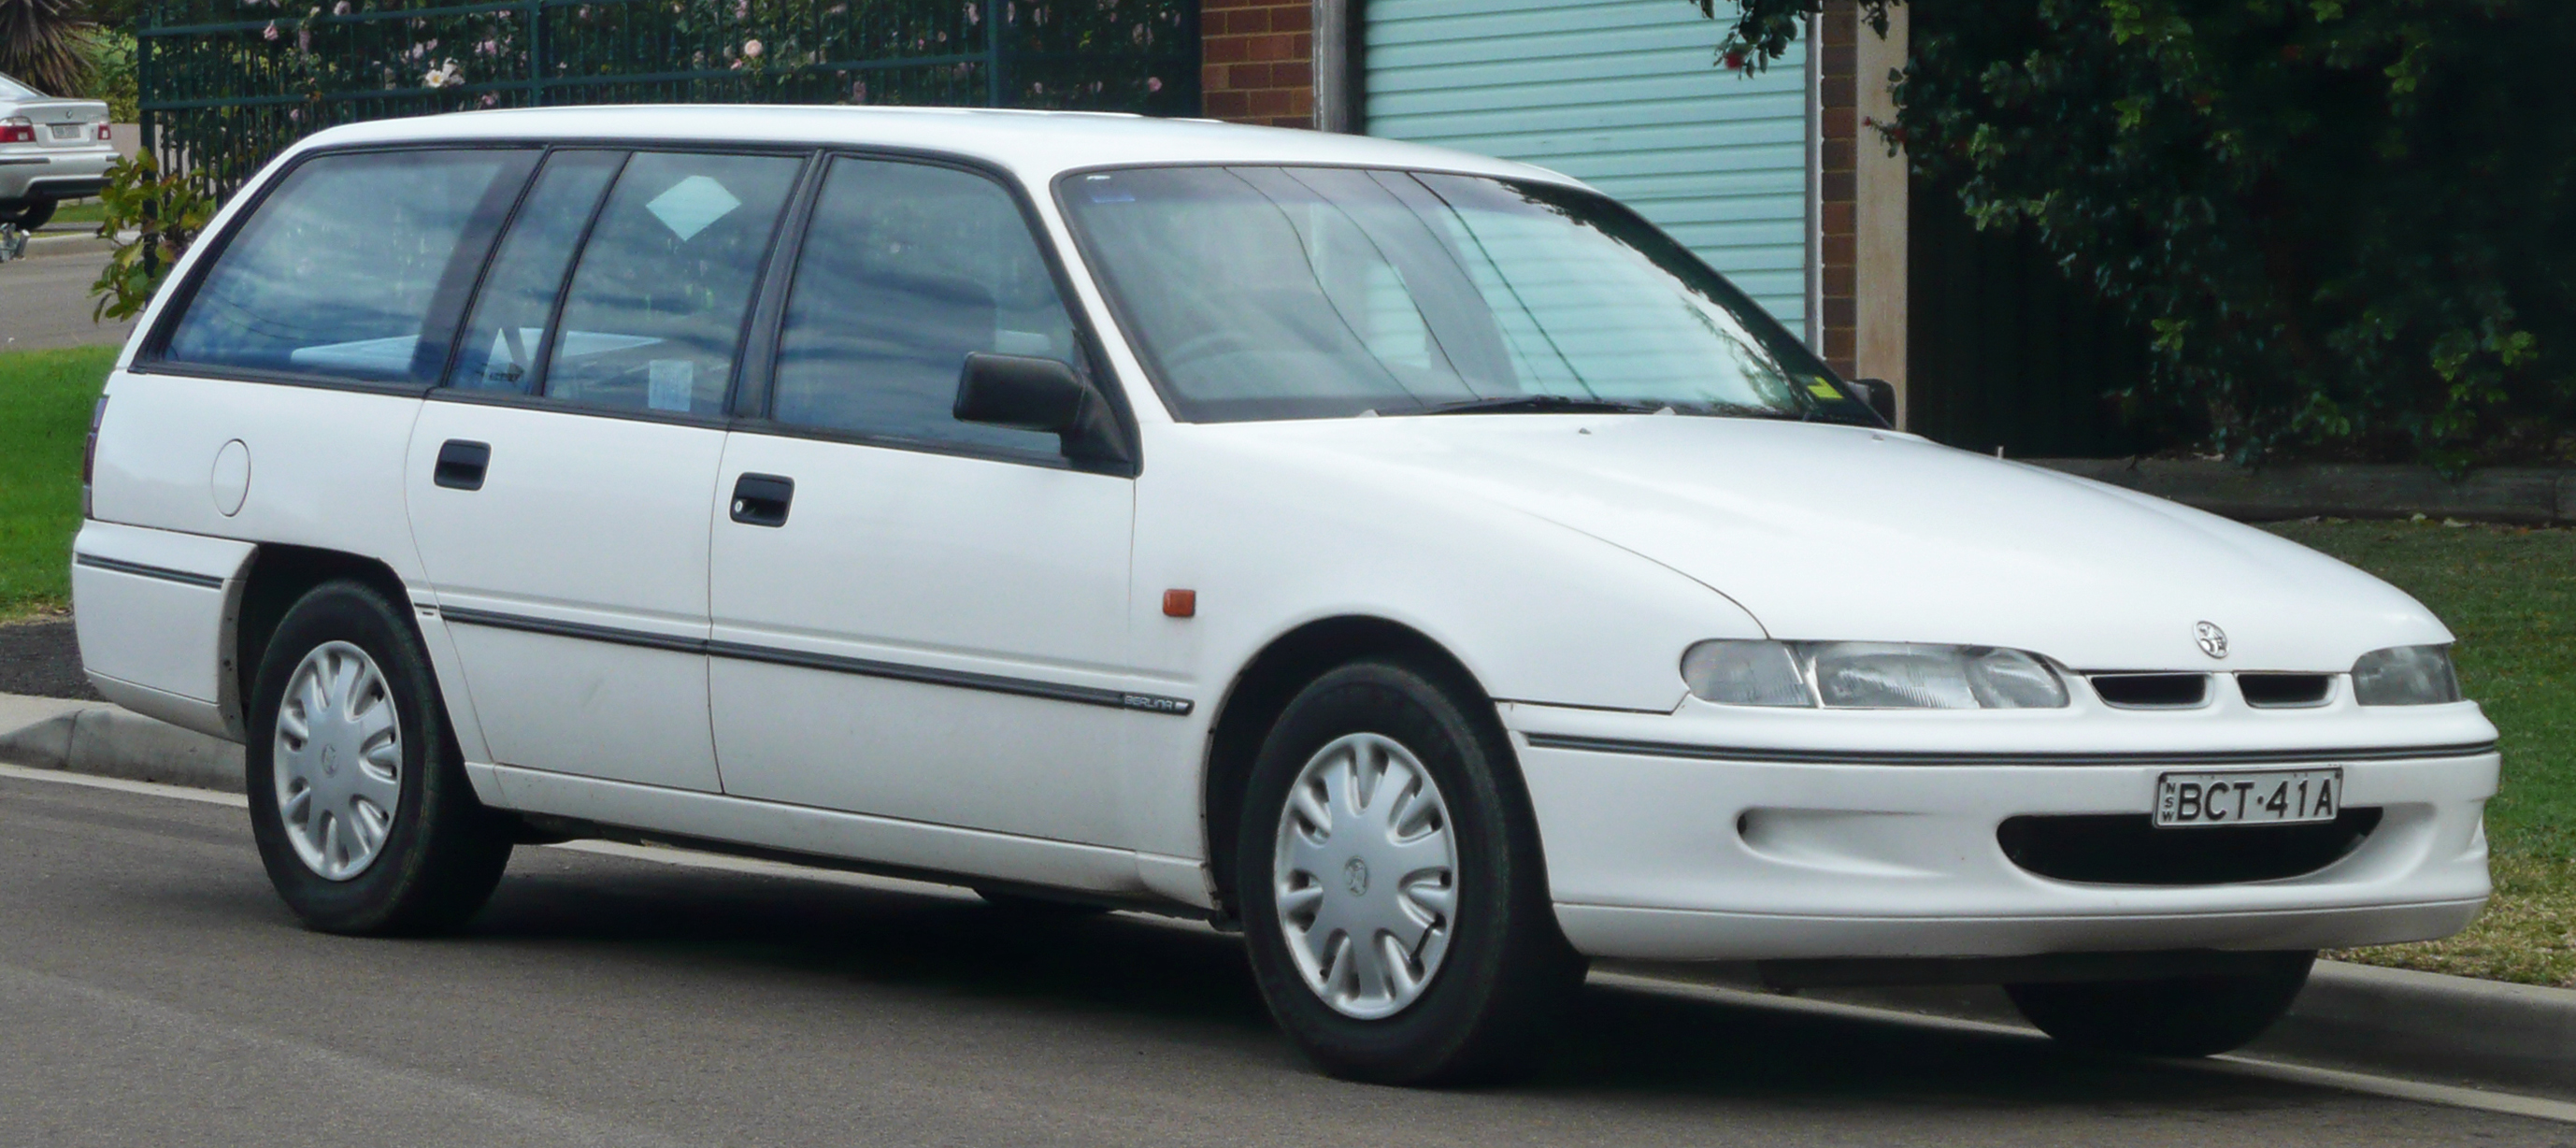 Cars holden commodore 1996 #4